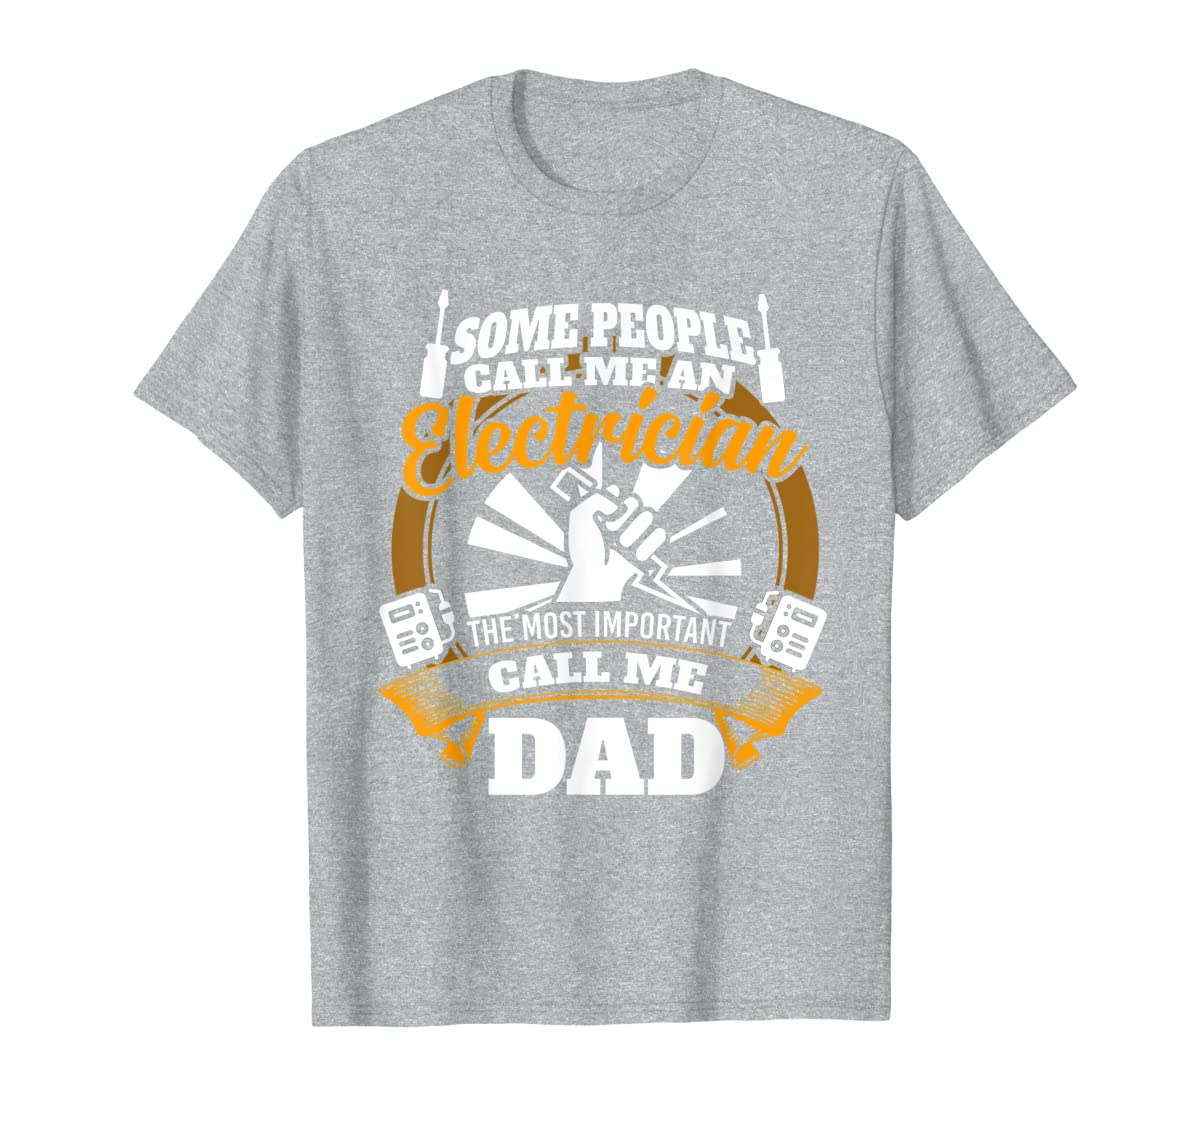 Mens Funny Electrician T-shirt for dad who loves technician gifts-Men's T-Shirt-Sport Grey